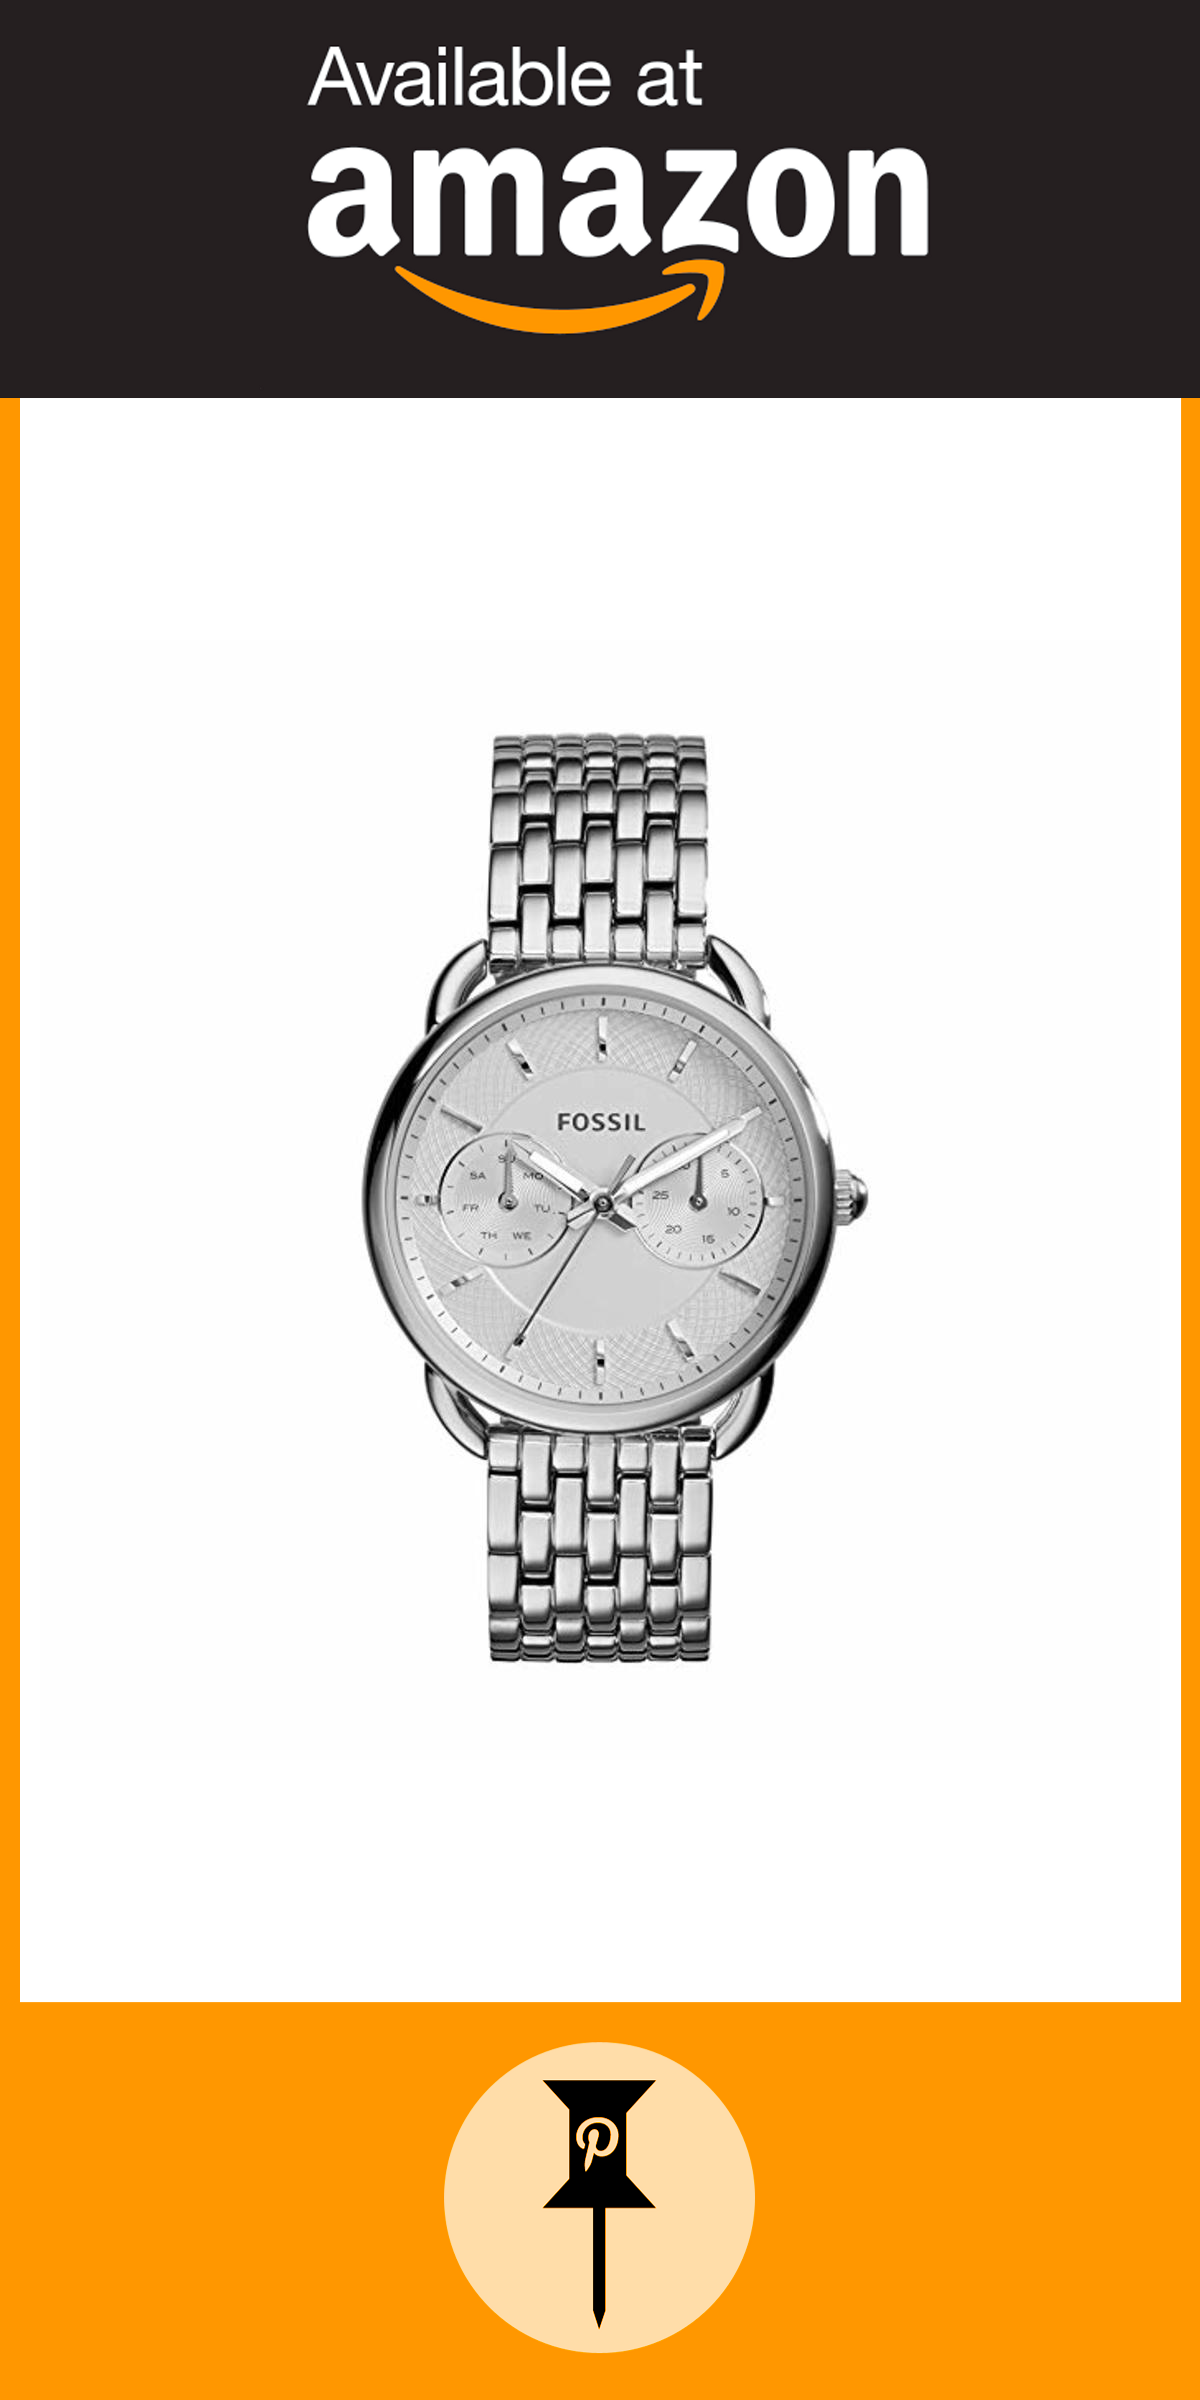 Tailor Fossil Fossil Femme Fossil Montre Montre Tailor Femme 7IbYfg6vym